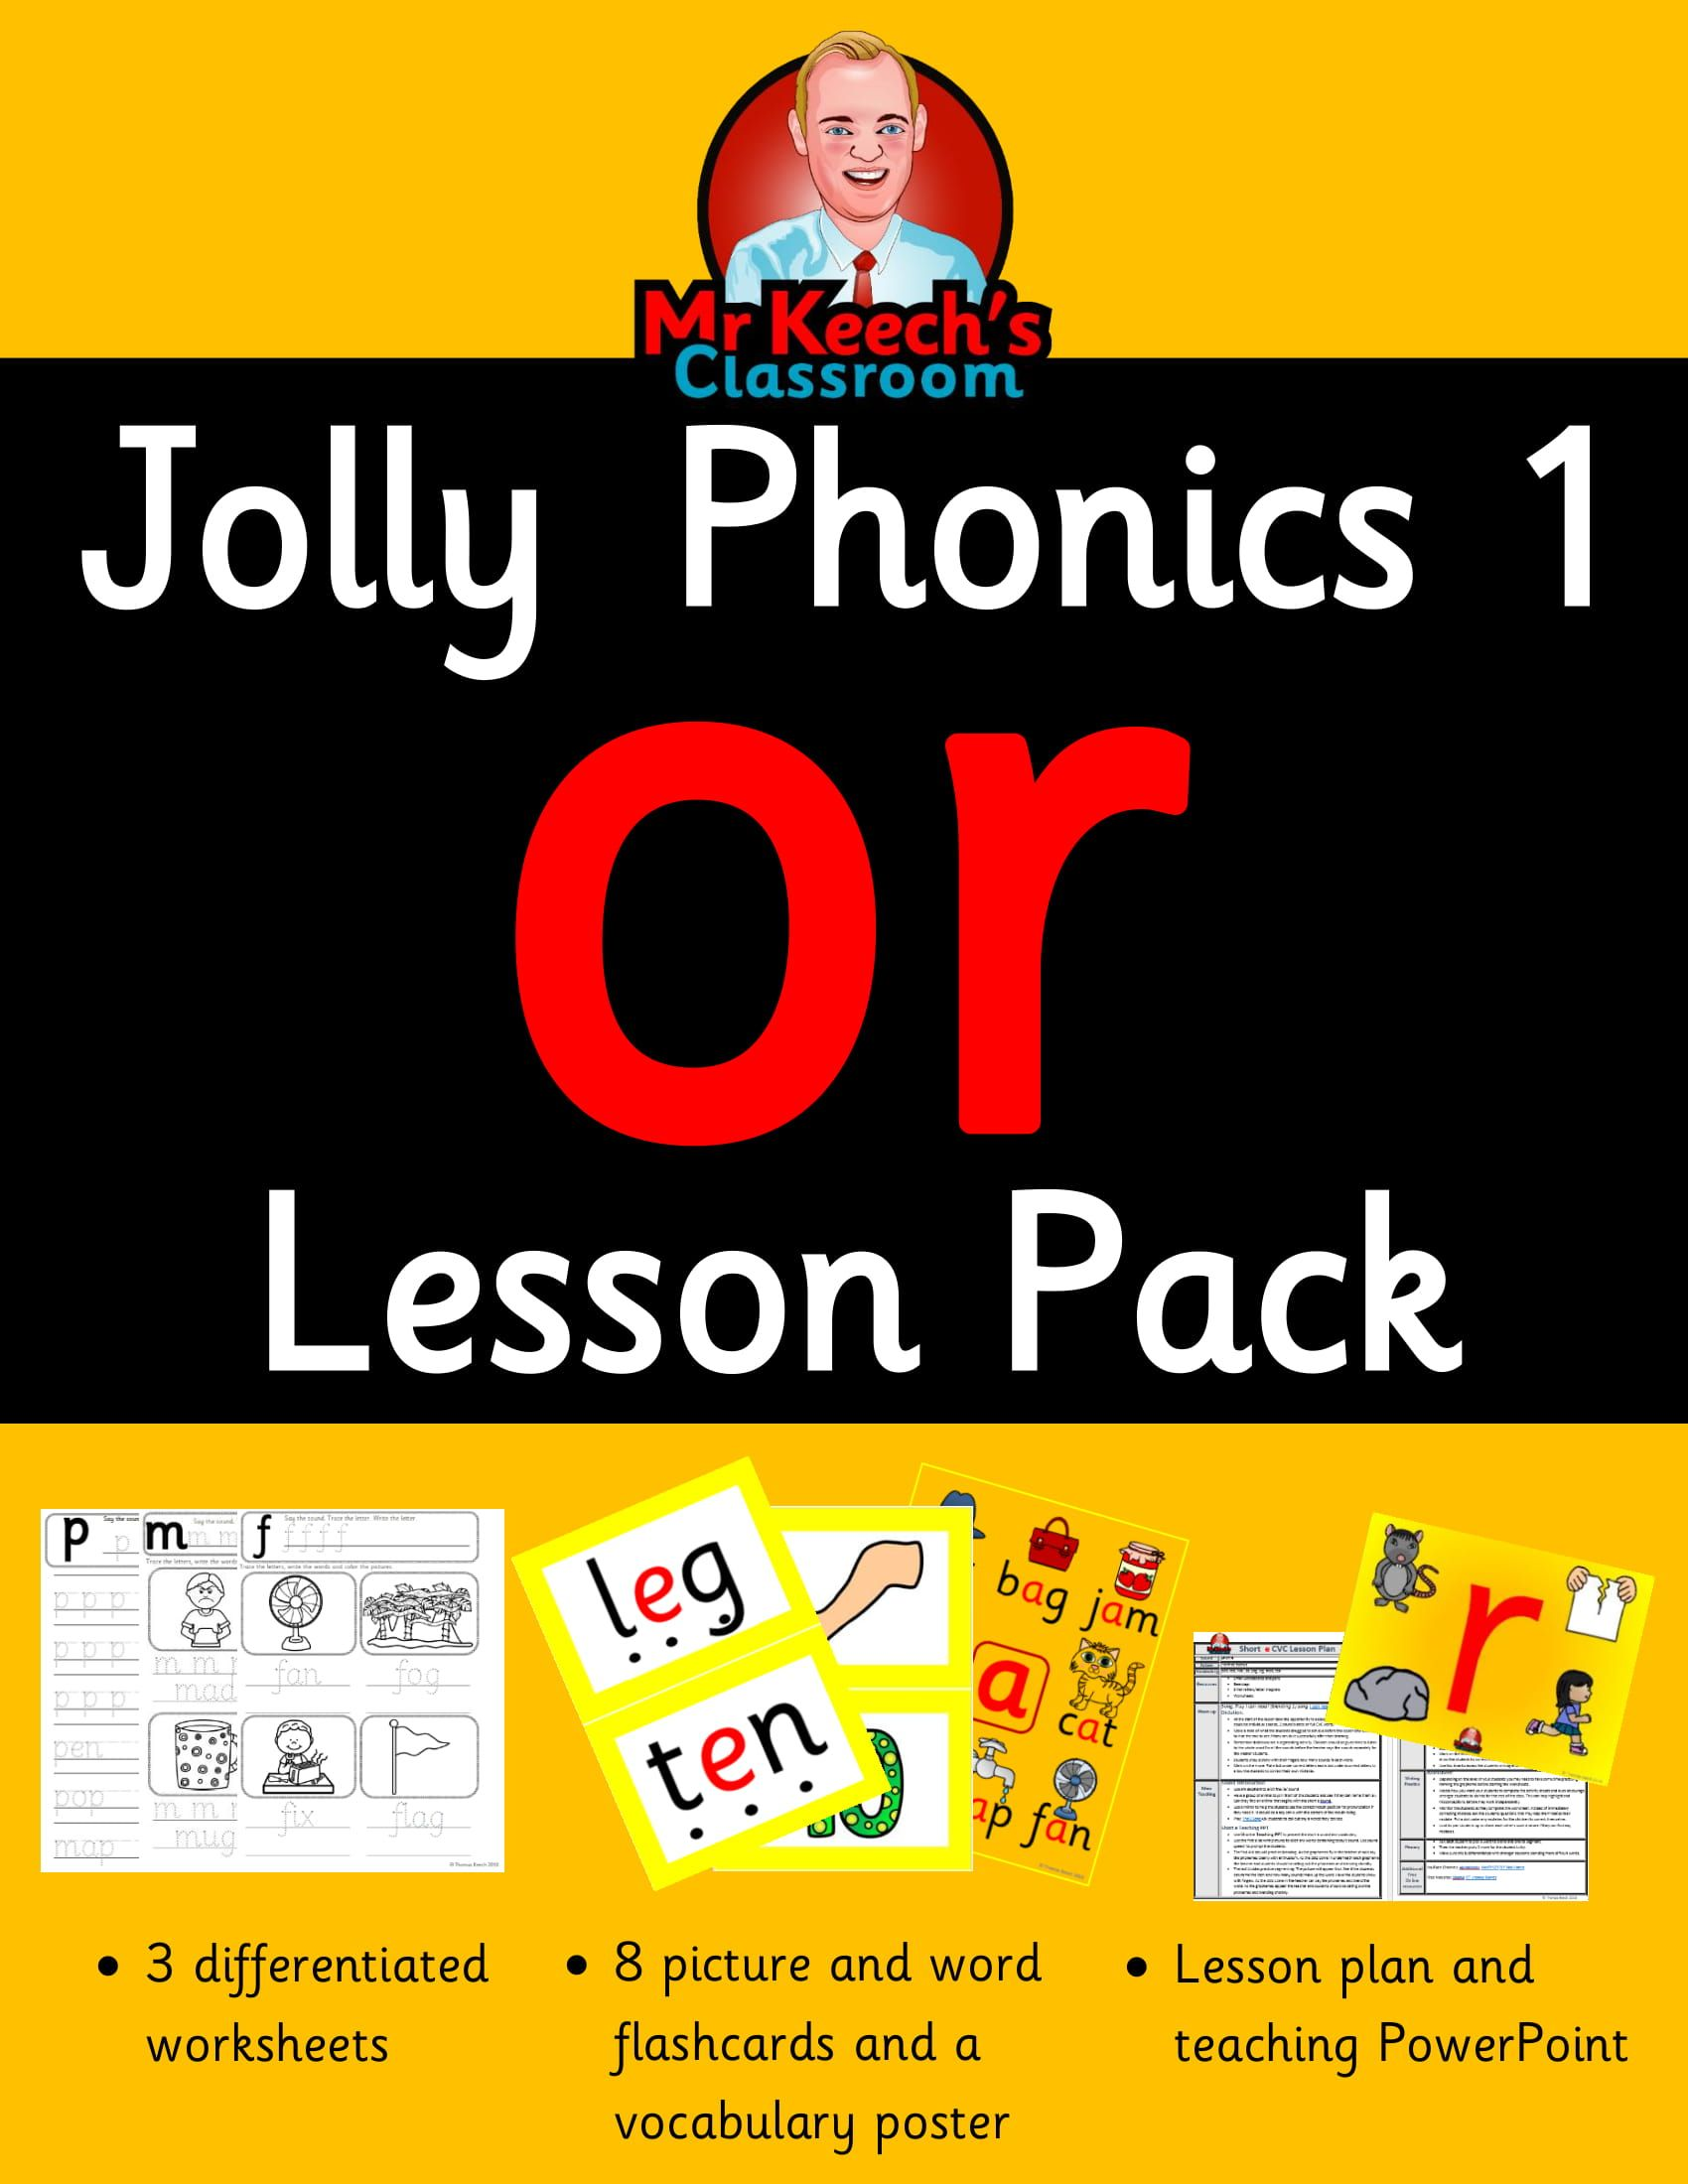 This Or Lesson Pack Contains Everything You Need To Teach